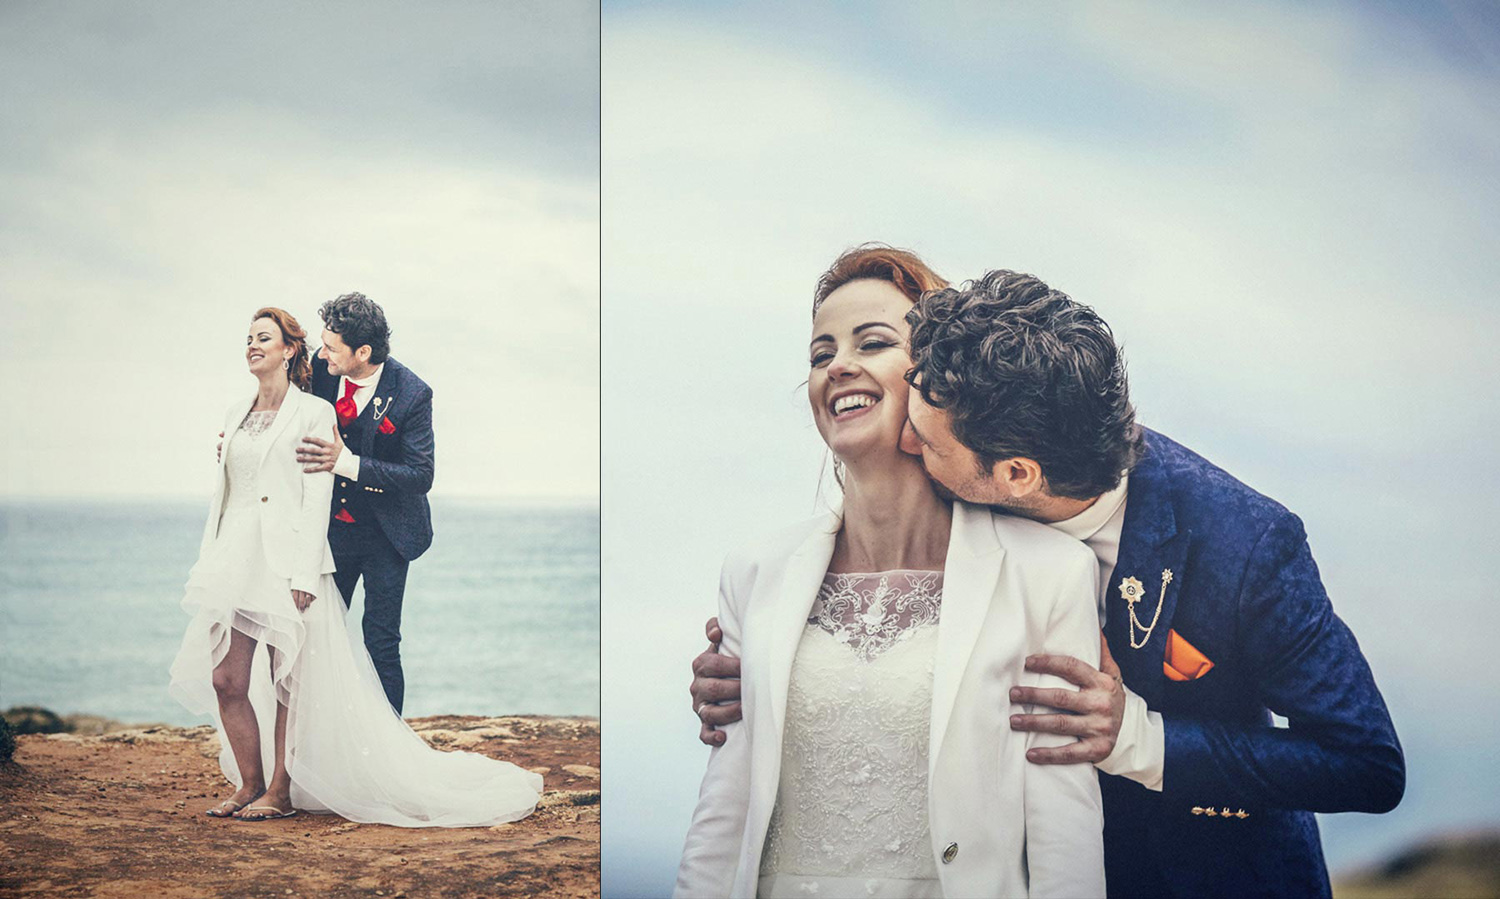 yesido-algarve-wedding-photography-(5)